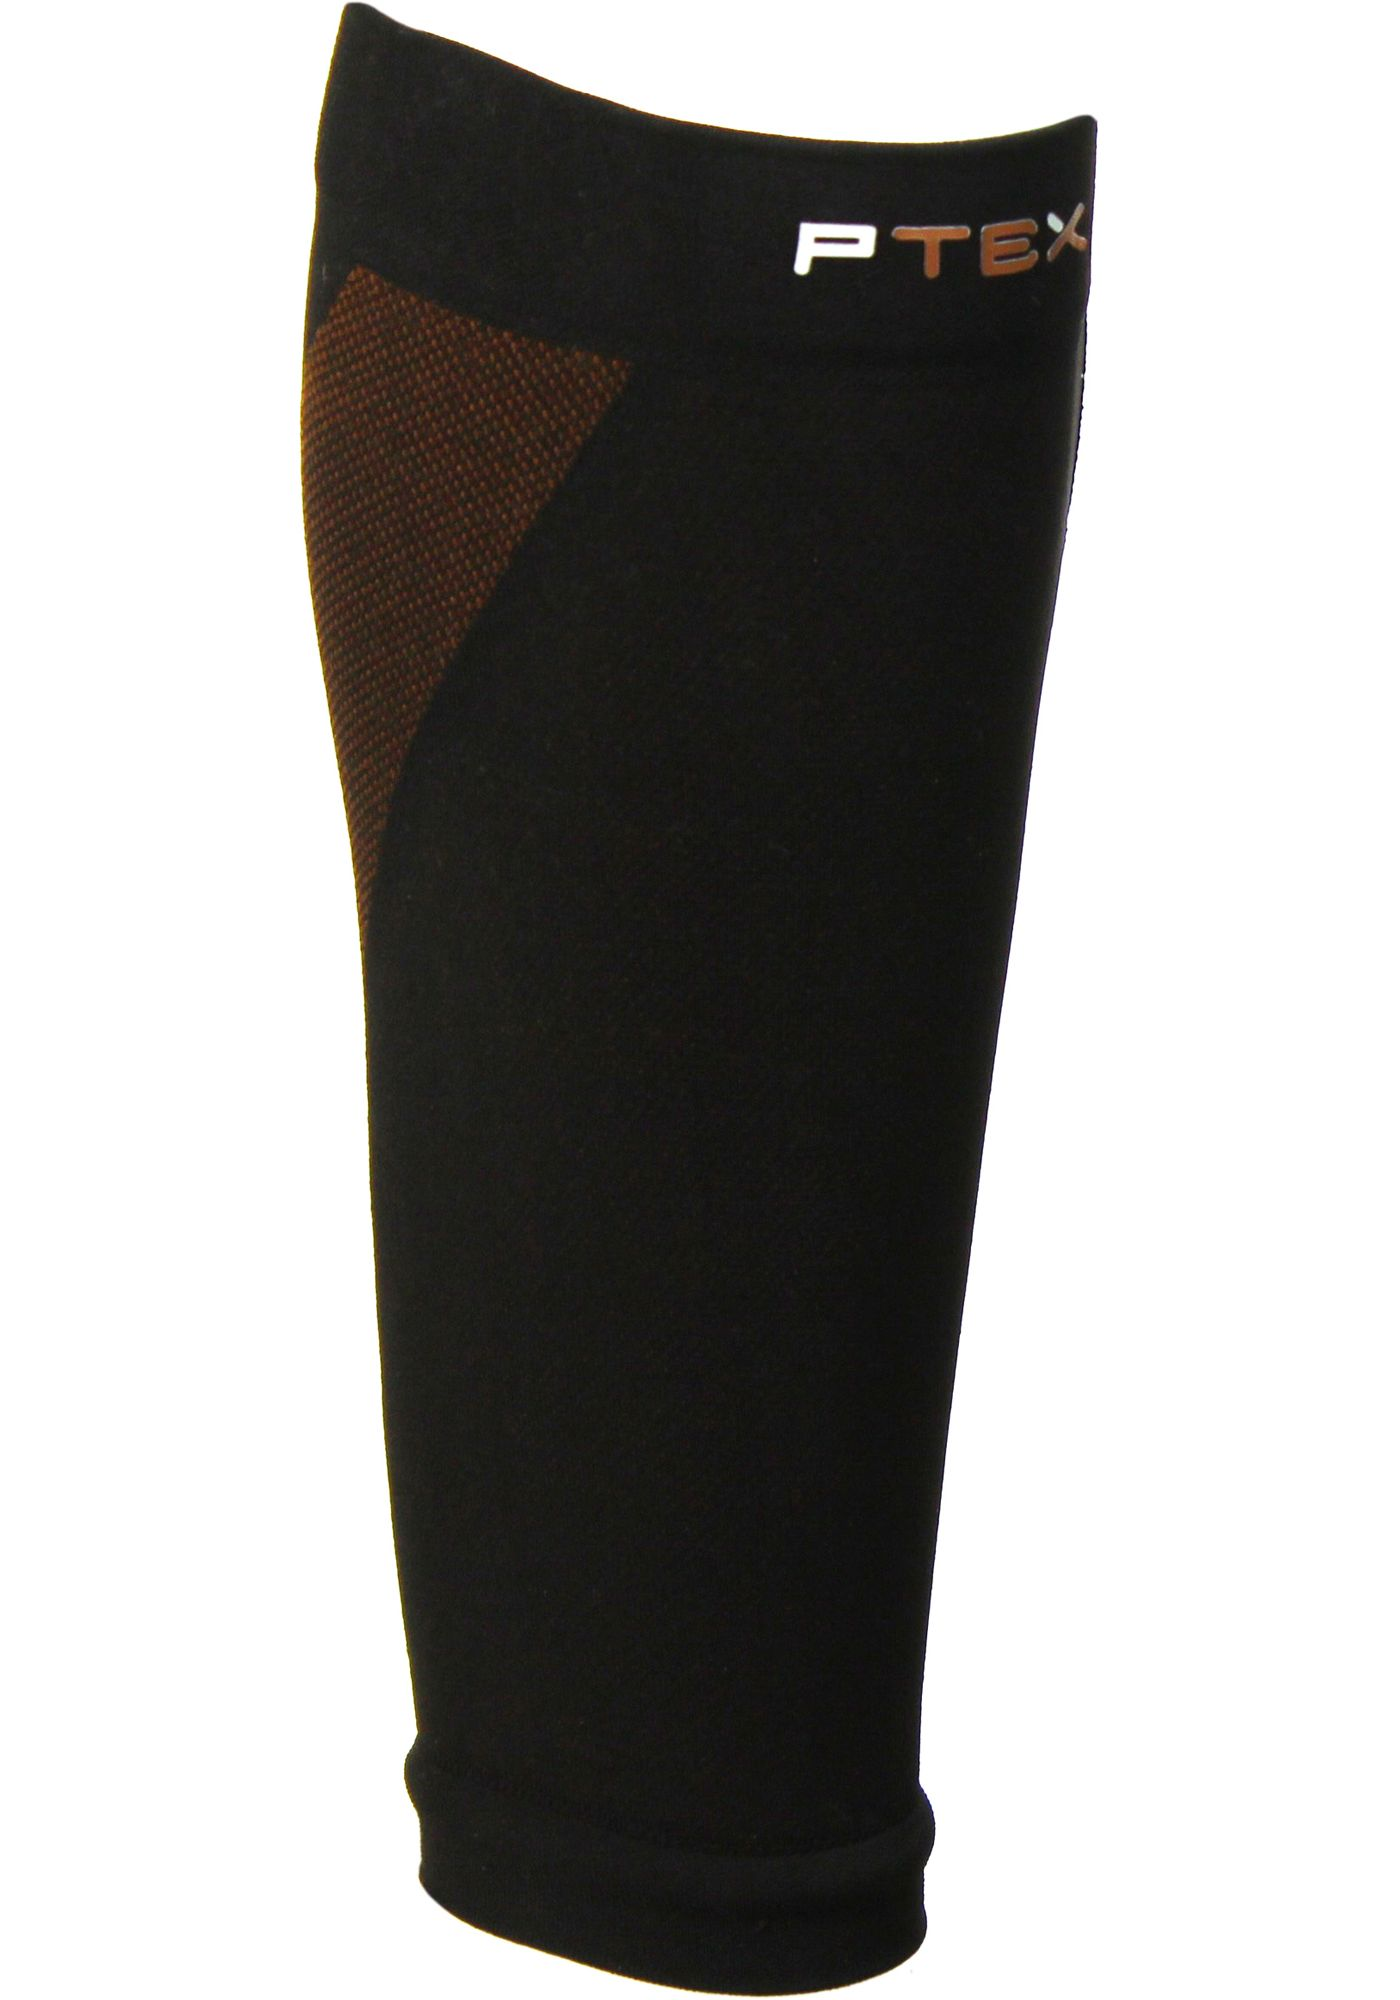 P-TEX Copper Knit Calf Sleeve